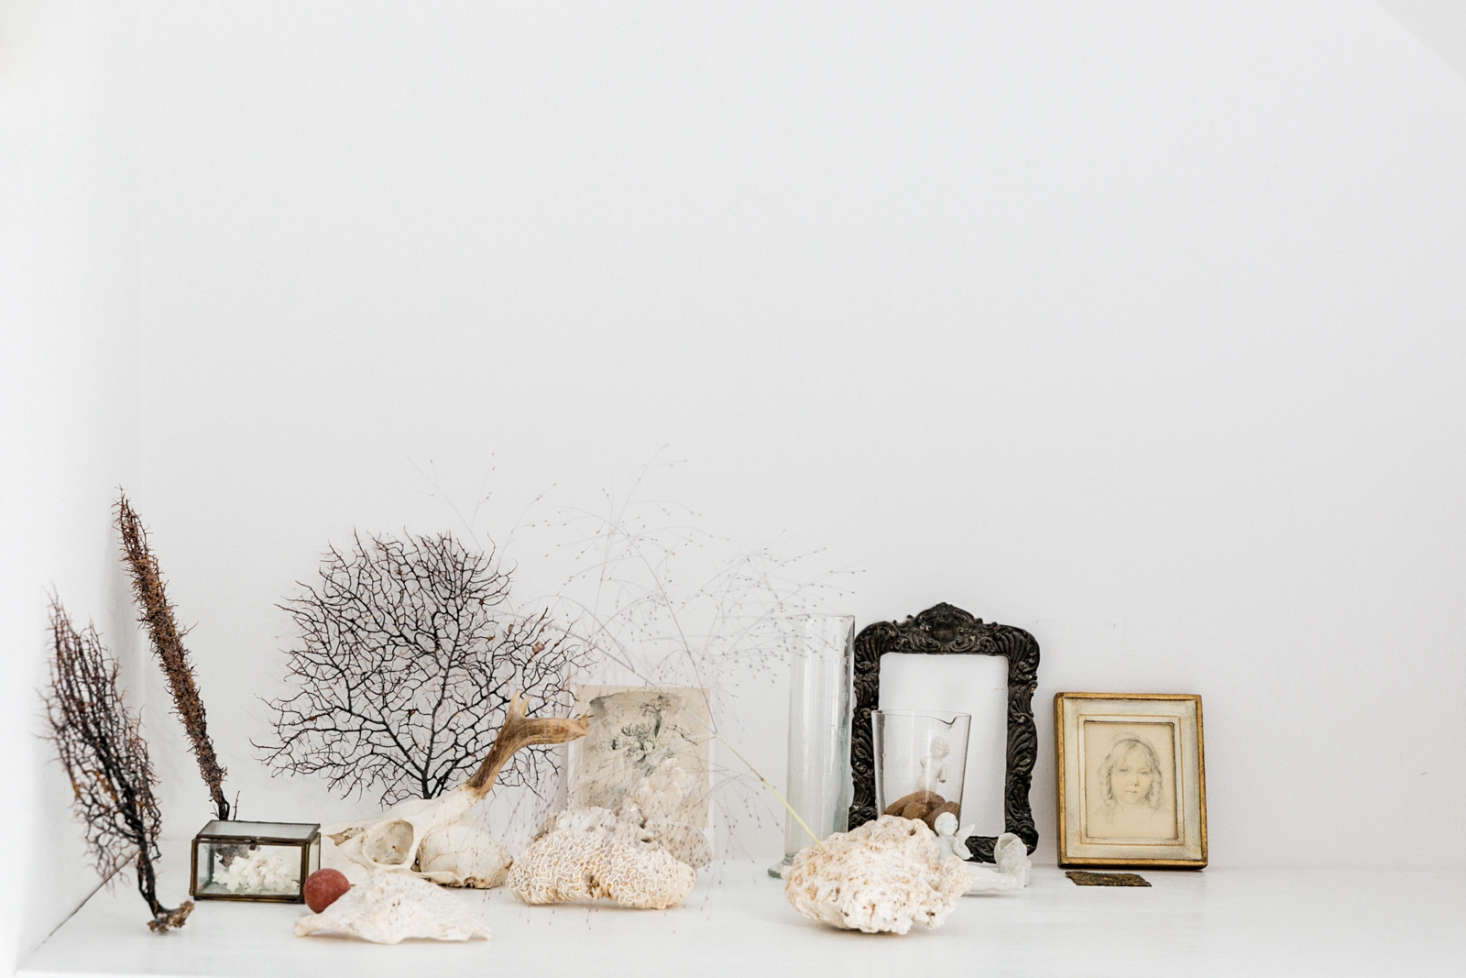 Still life with shells; vignette by Yasuyo Harvey. See more at The Botanical Life: At Home with London Stylist Yasuyo Harvey. Photograph courtesy of The Modern House.